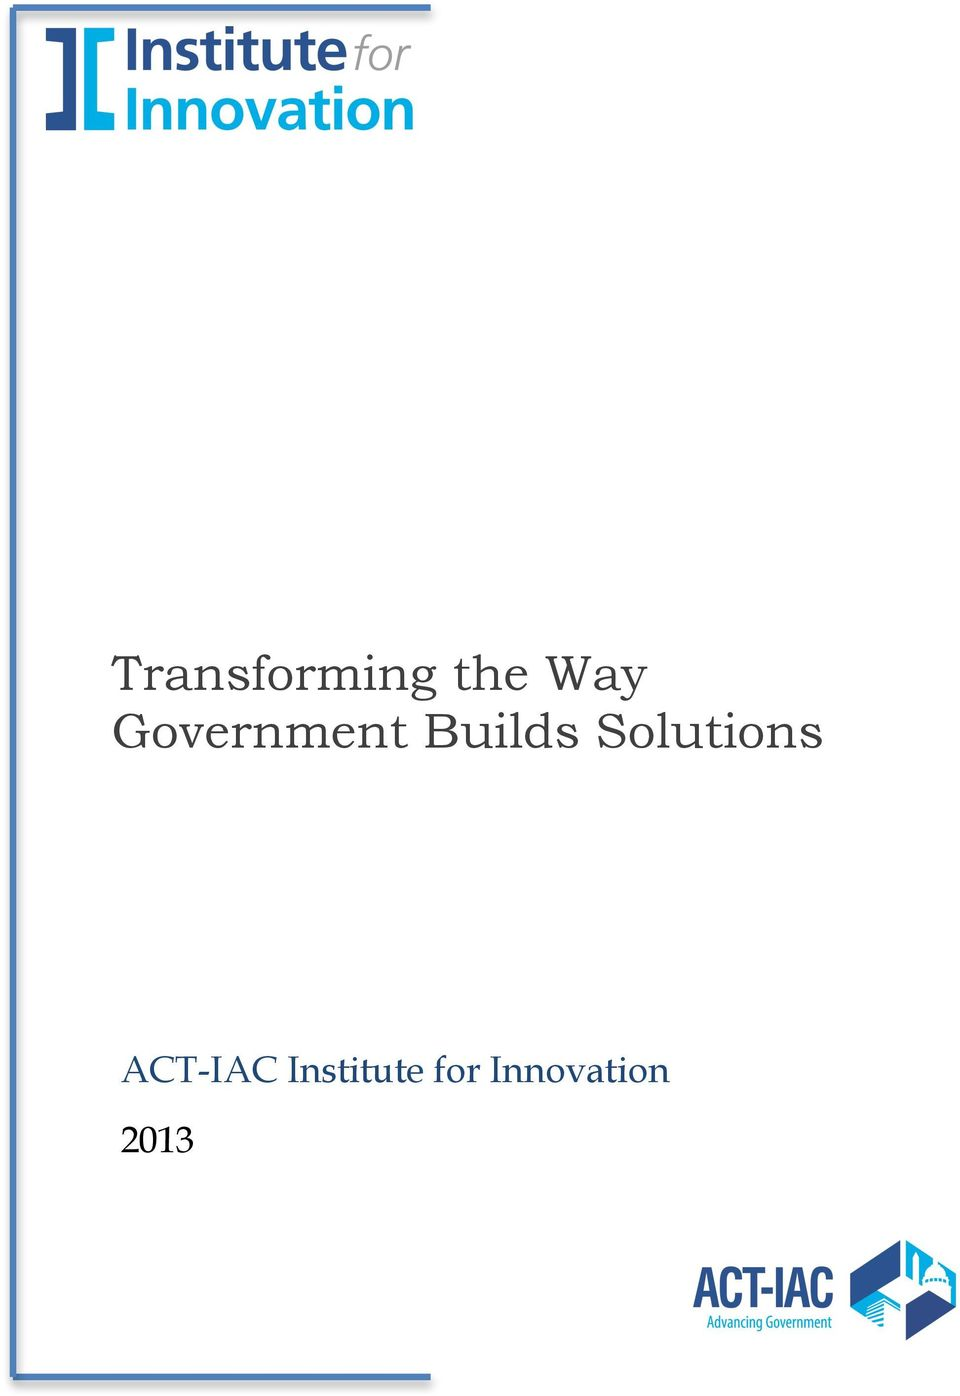 Solutions > ACT-IAC